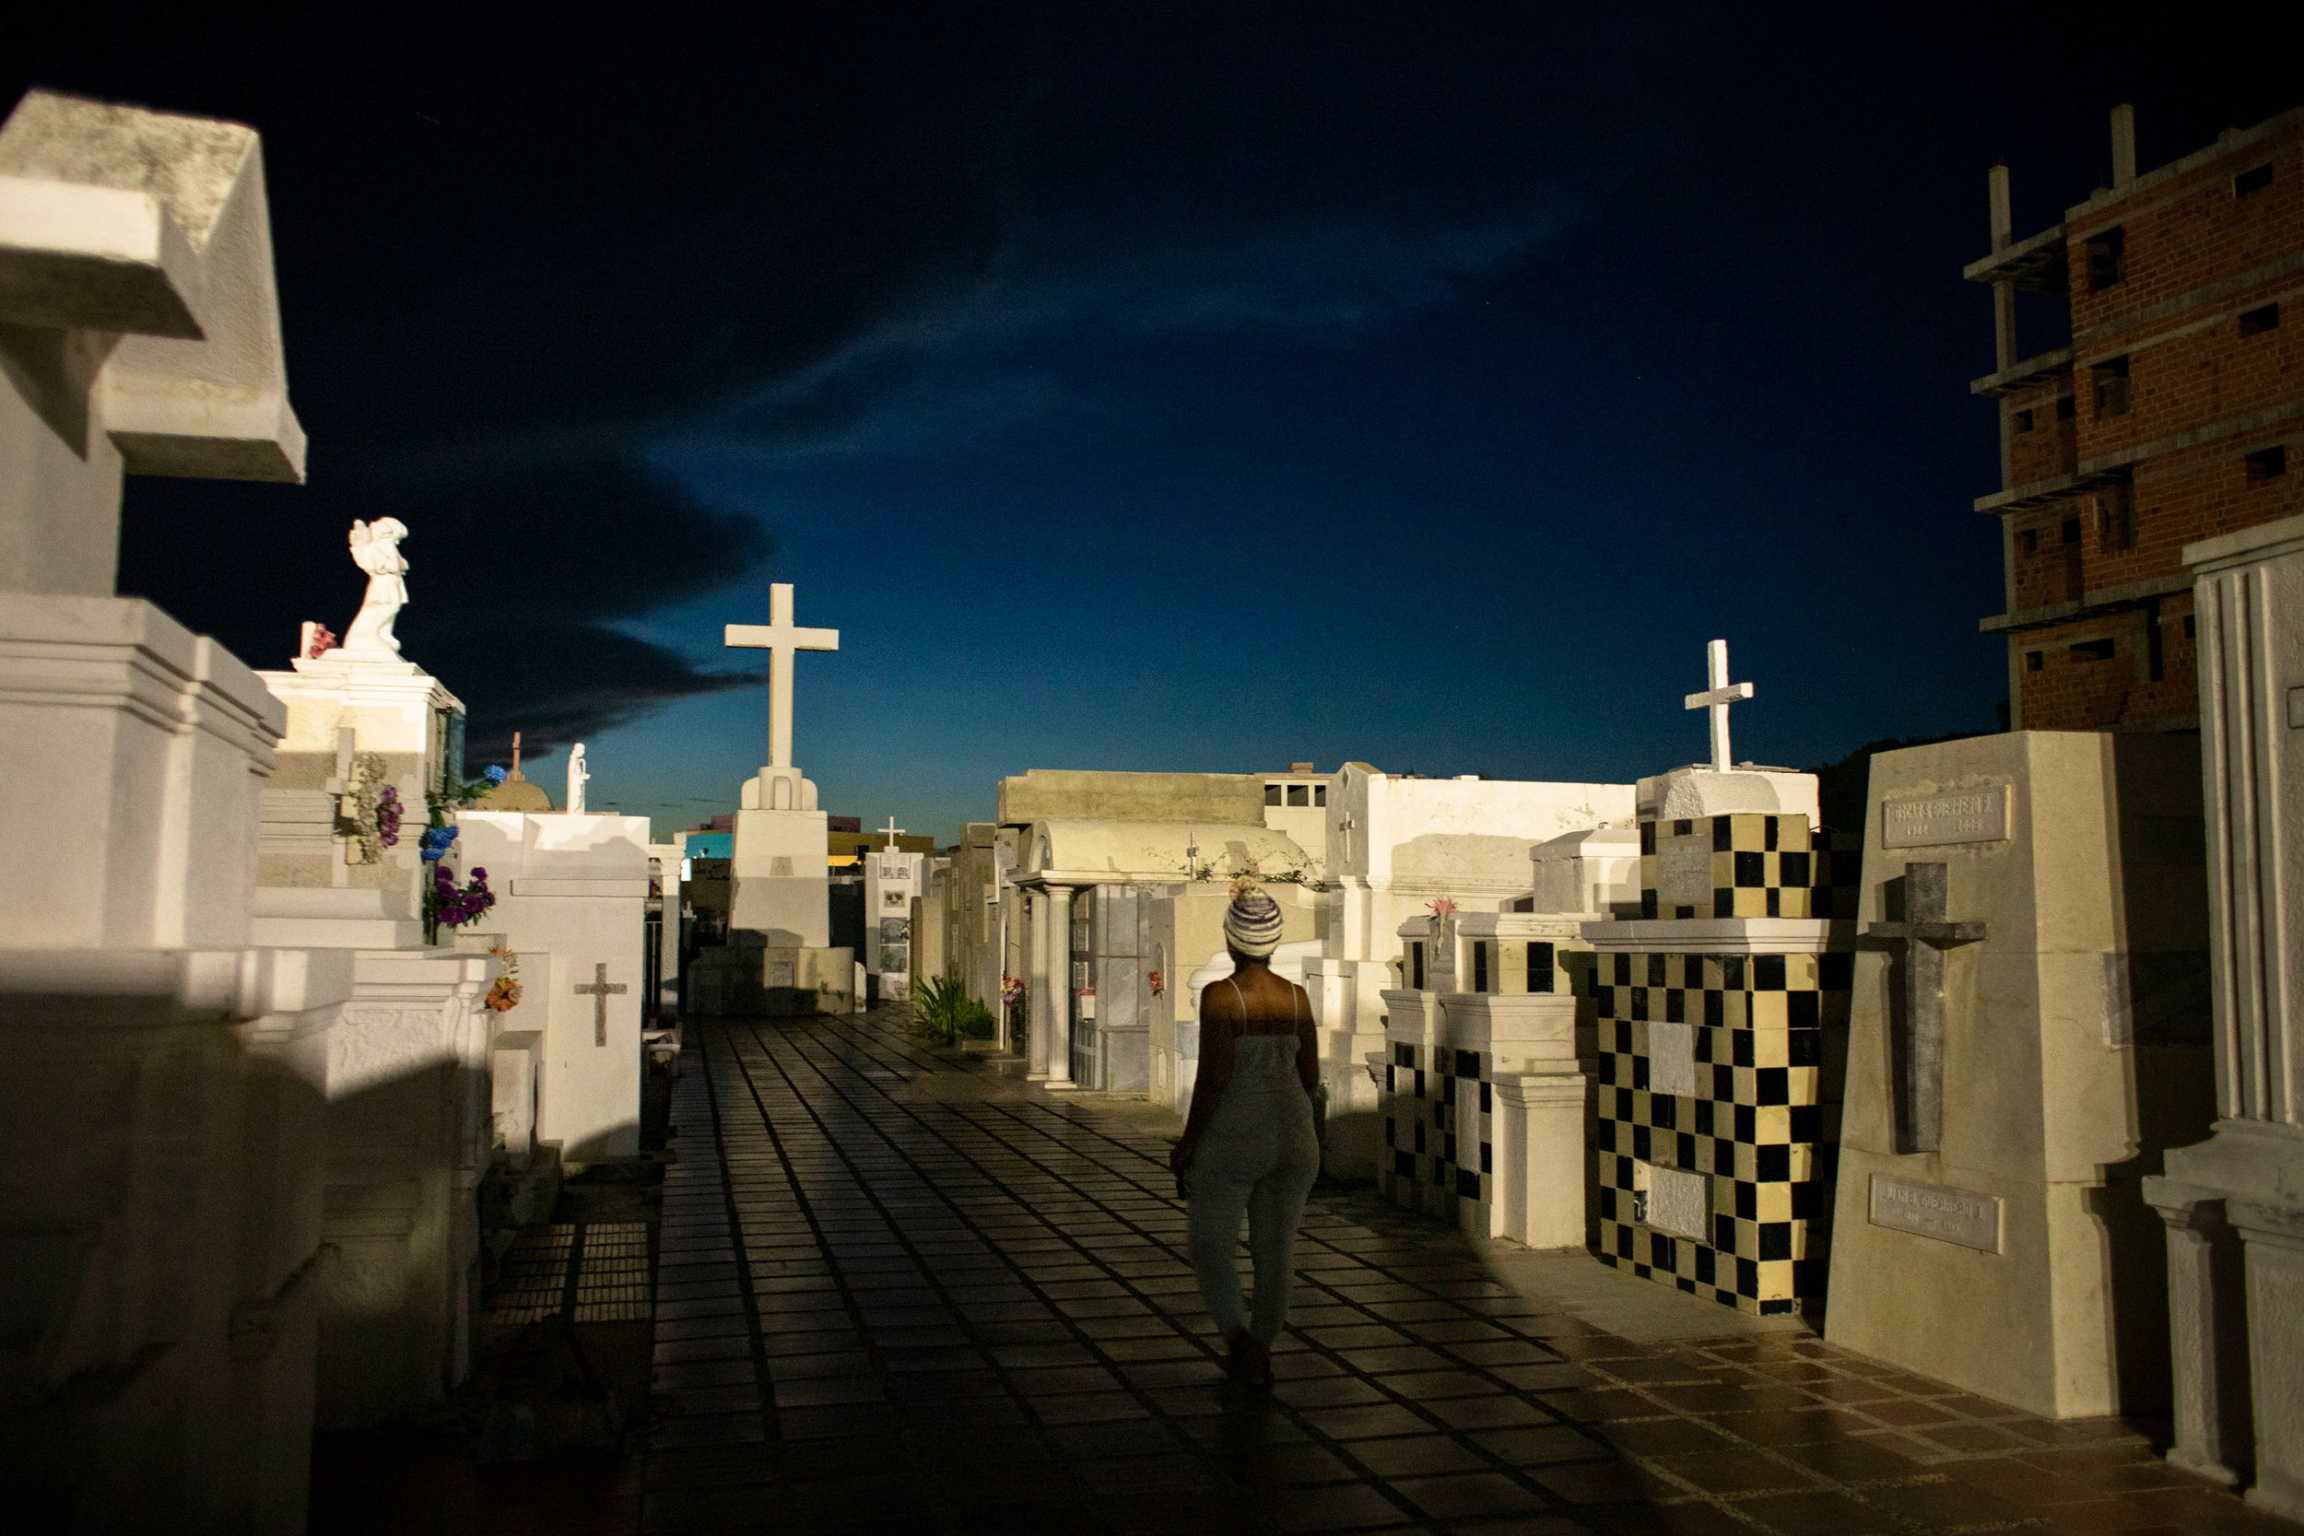 A woman is shown walking in an isle with large tombstones on either side and a white cross at the end.